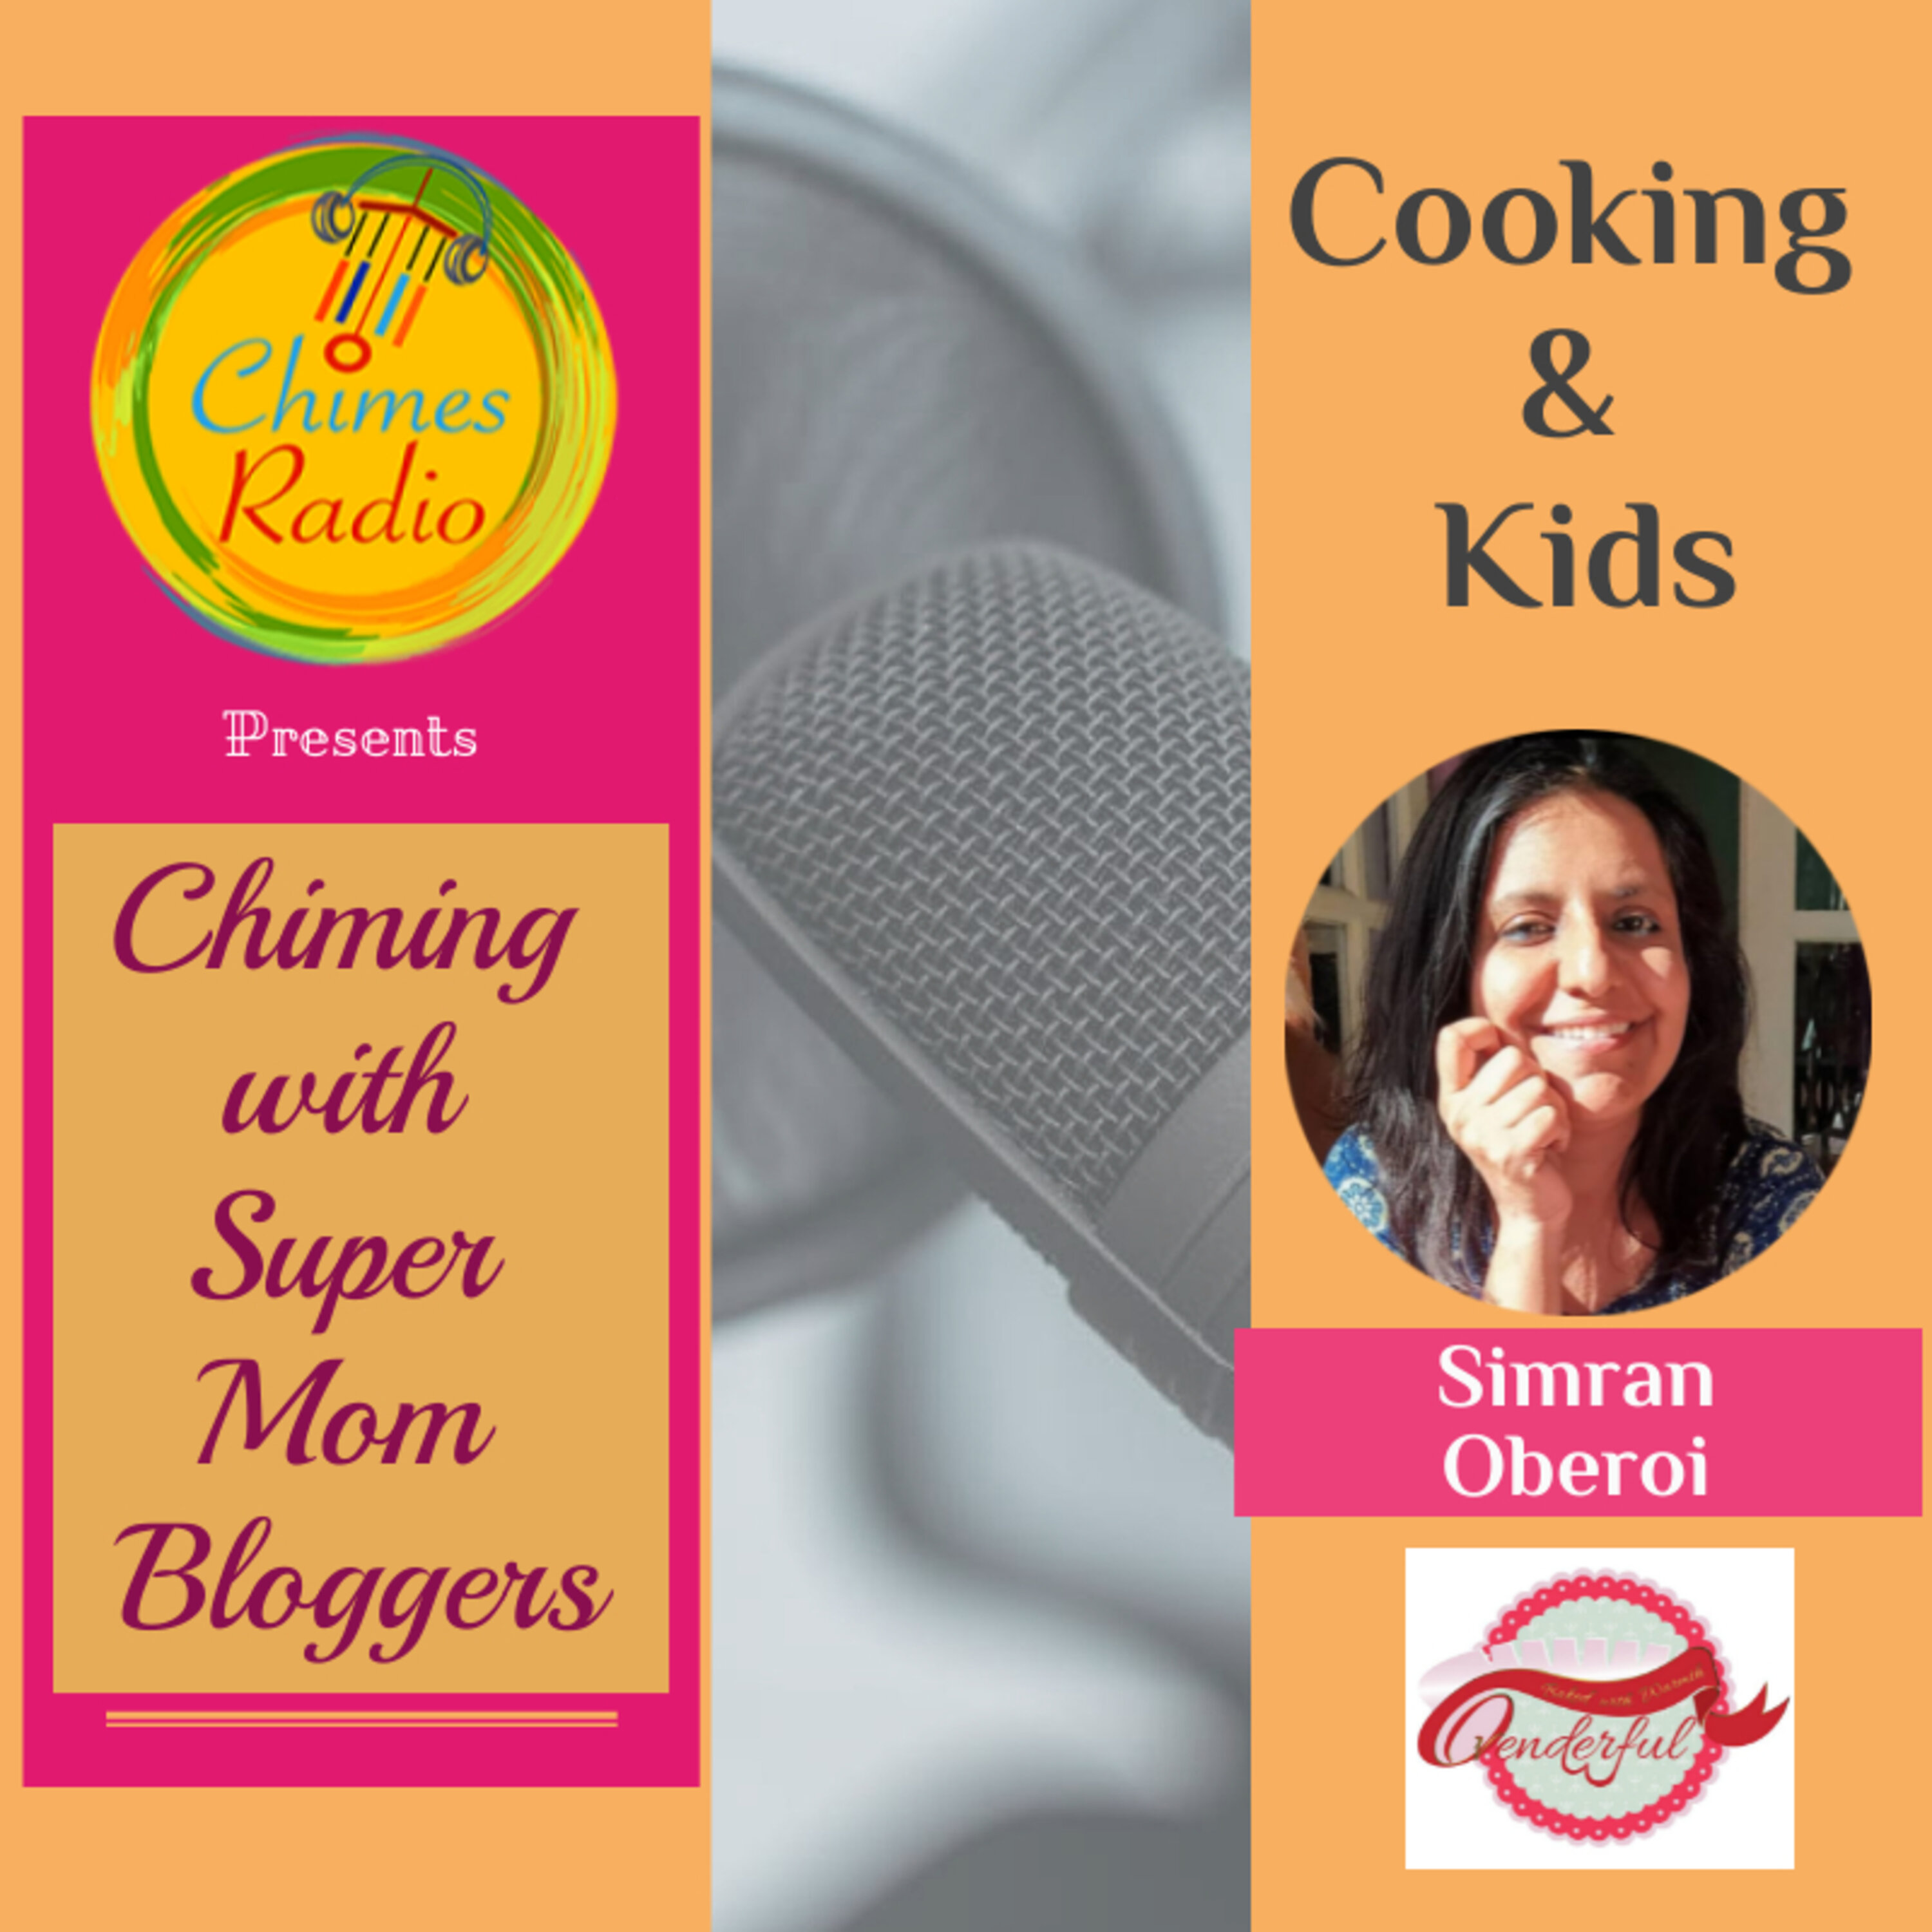 Super Mom Bloggers - Cooking and Kids